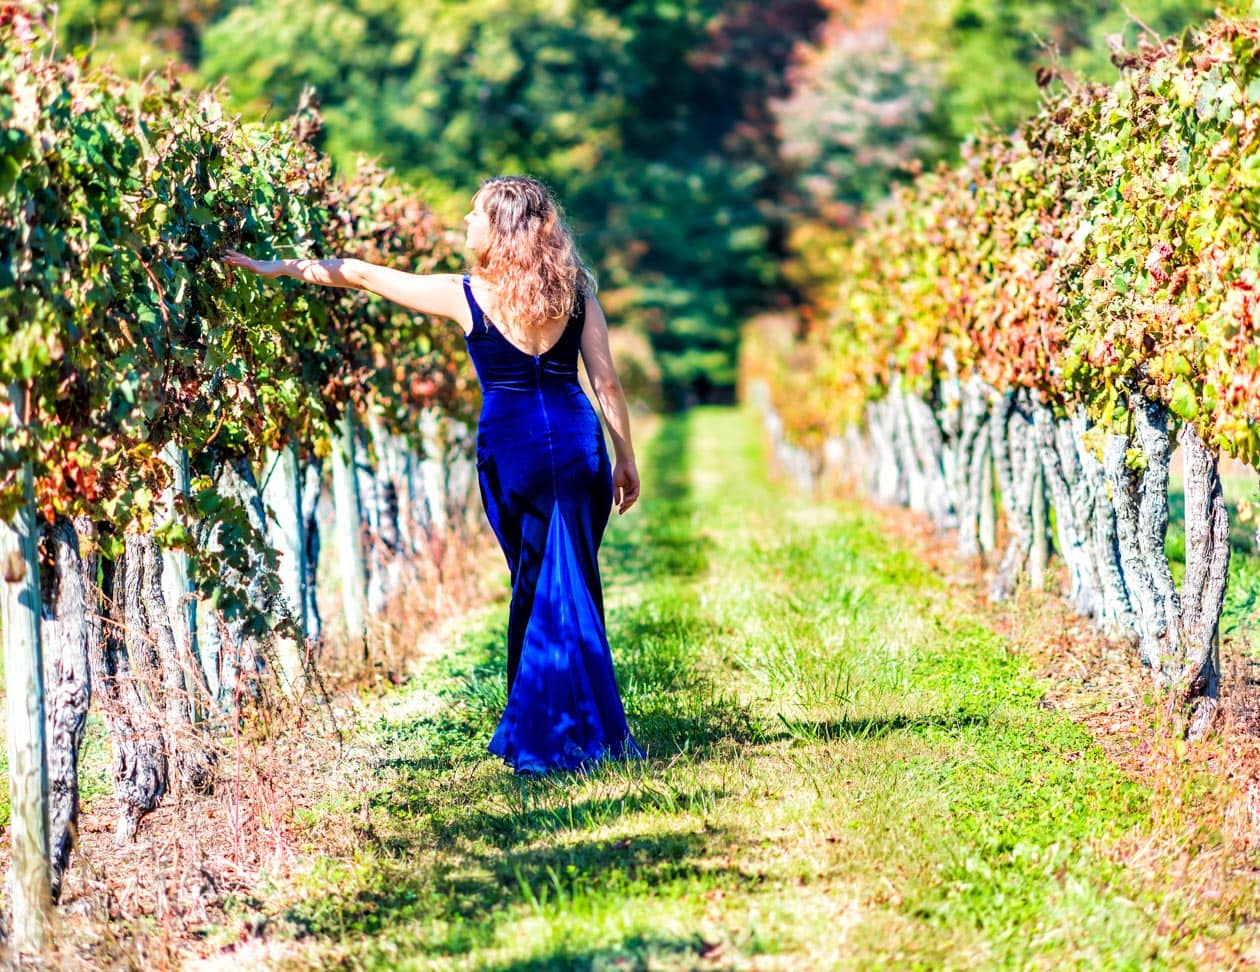 A woman in a blue dress walking in a Virginia Winery